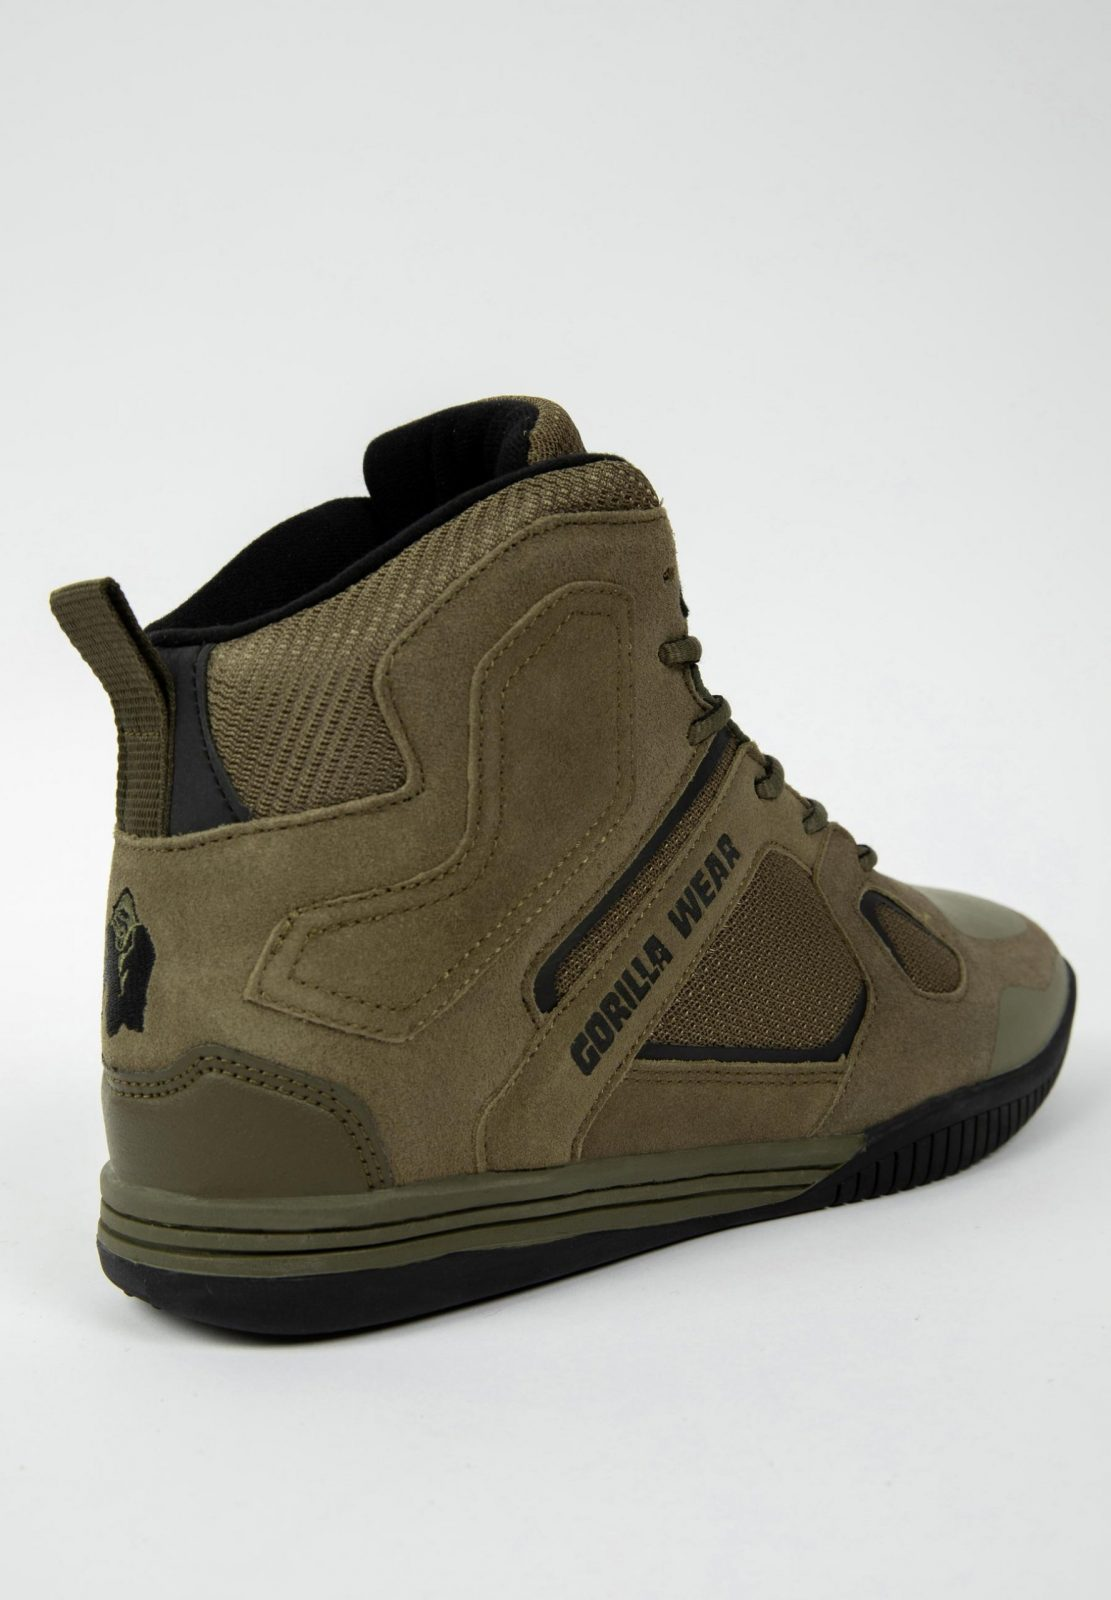 90009409-troy-high-tops-army-green-04